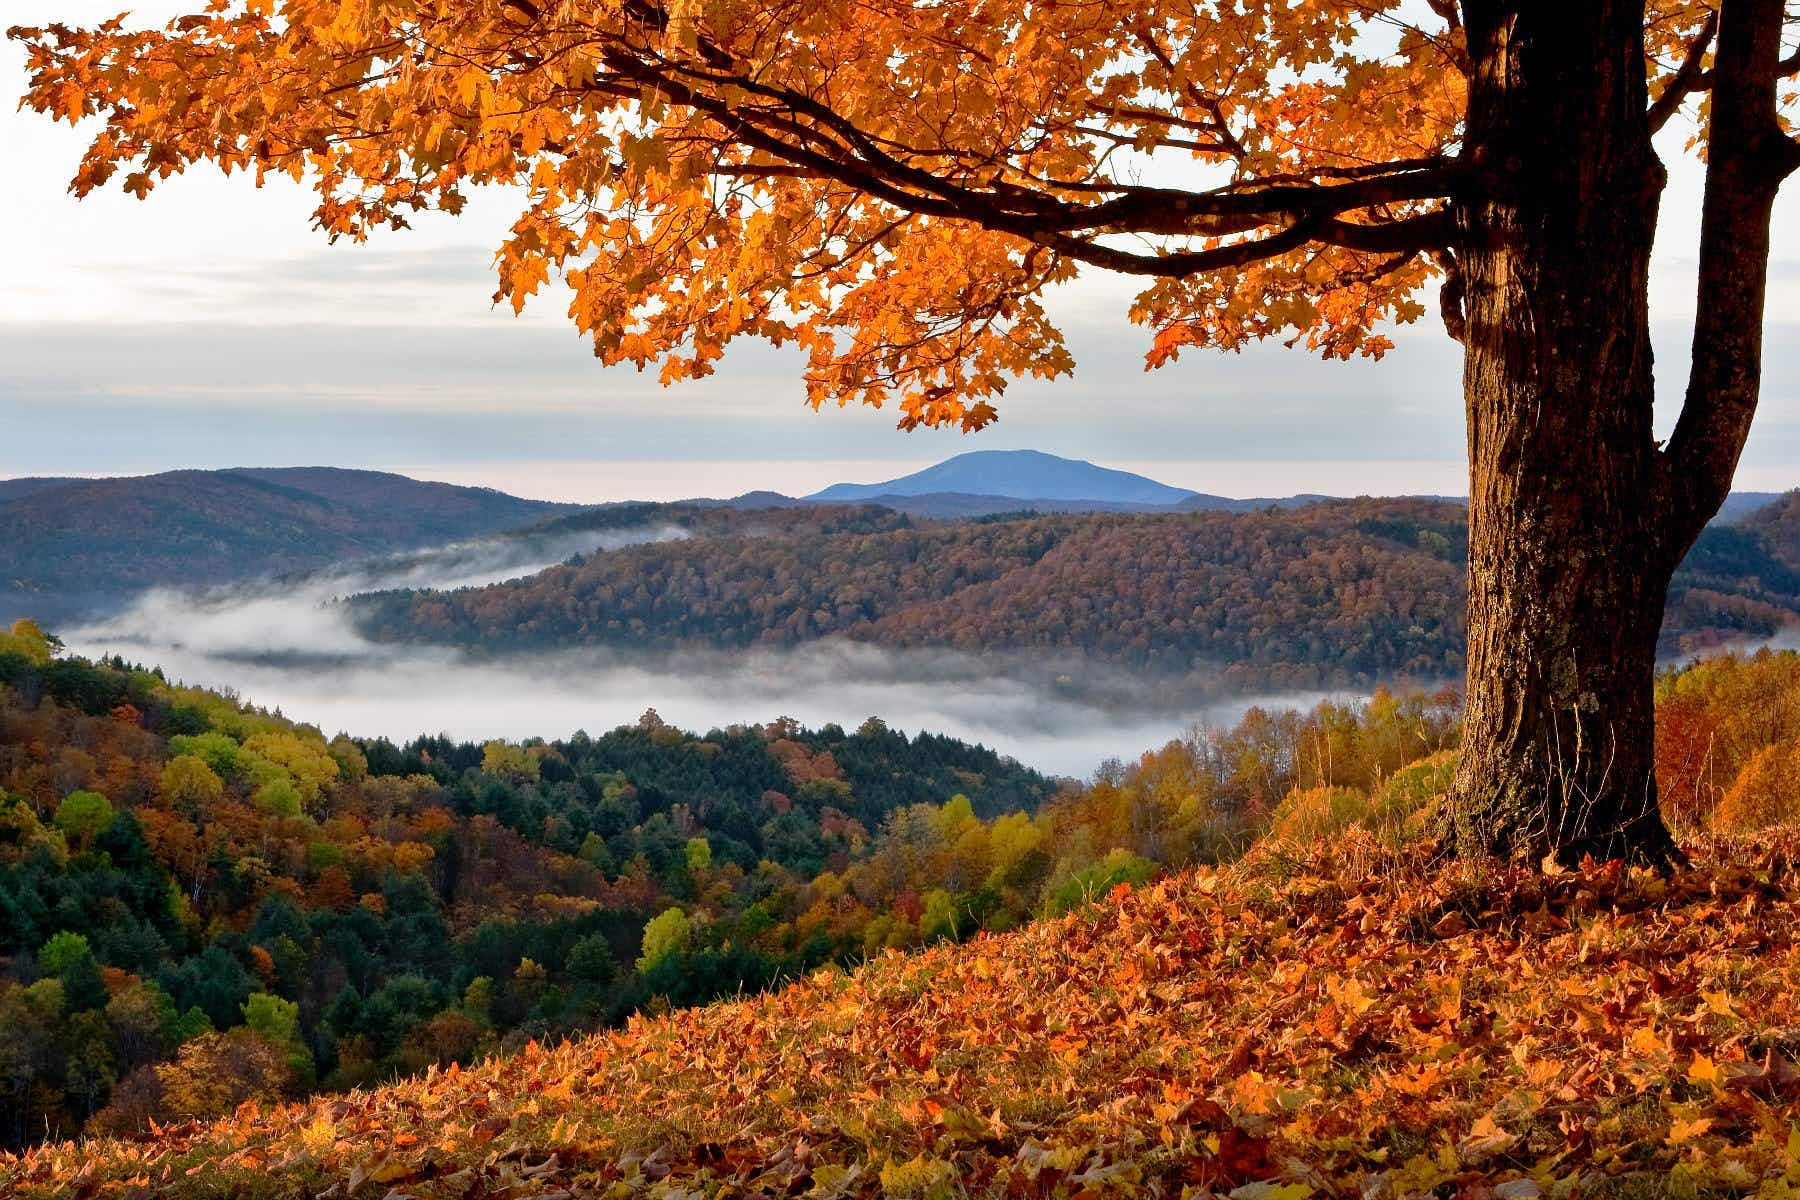 Get prepared; spectacular fall foliage is expected in New England this year